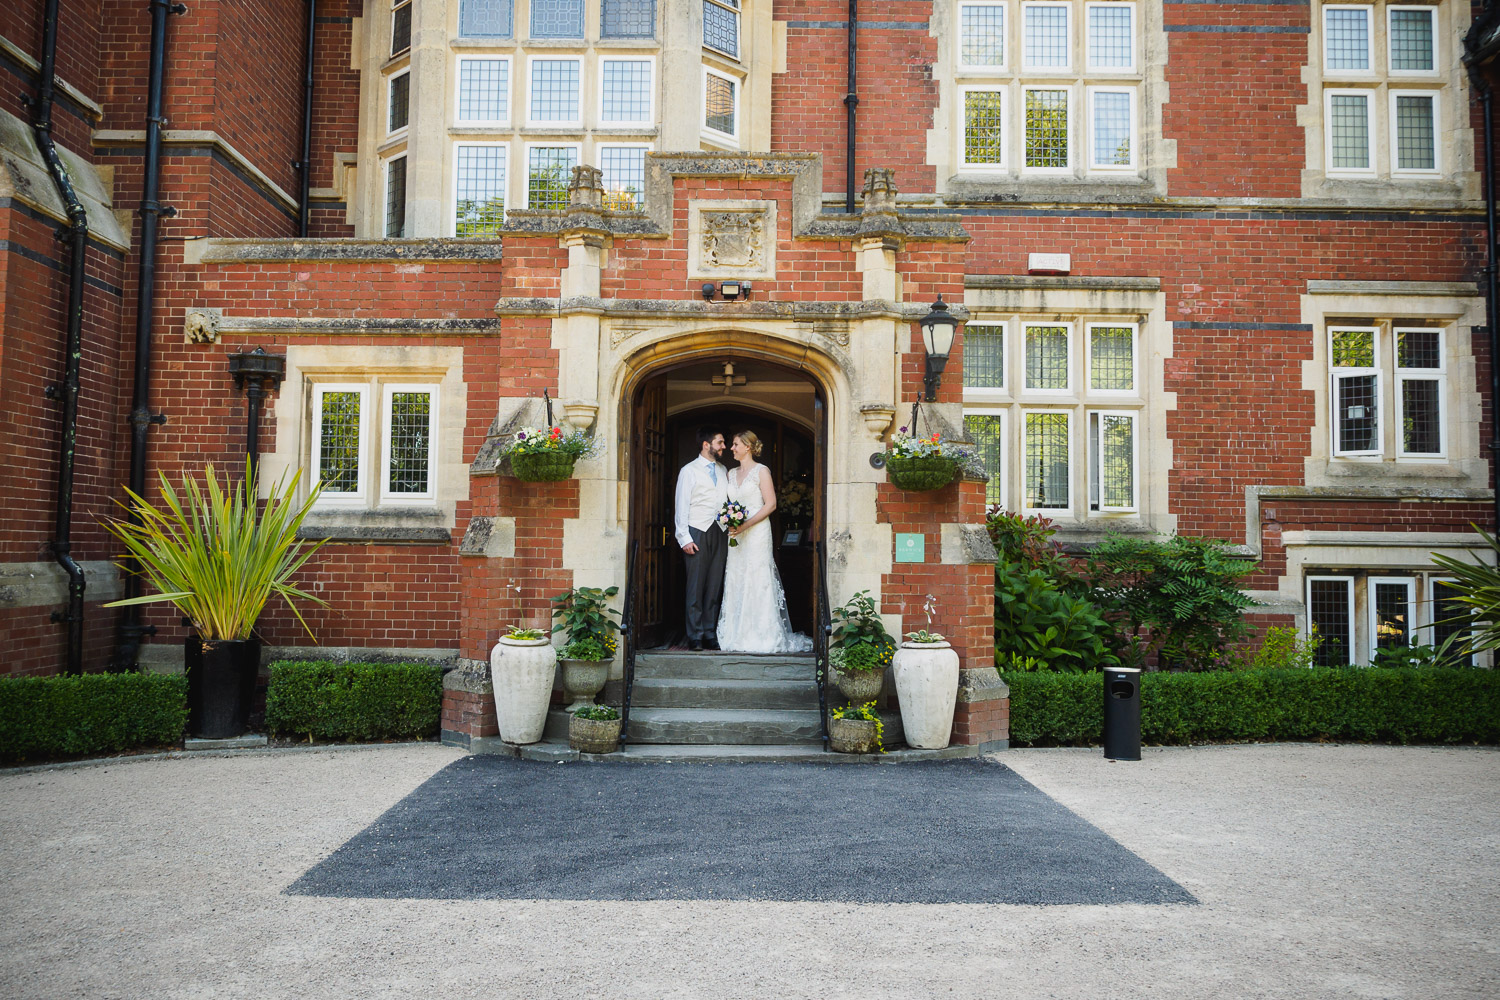 Bride and Groom standing in the entranceway of the wedding venue that is Berwick Lodge